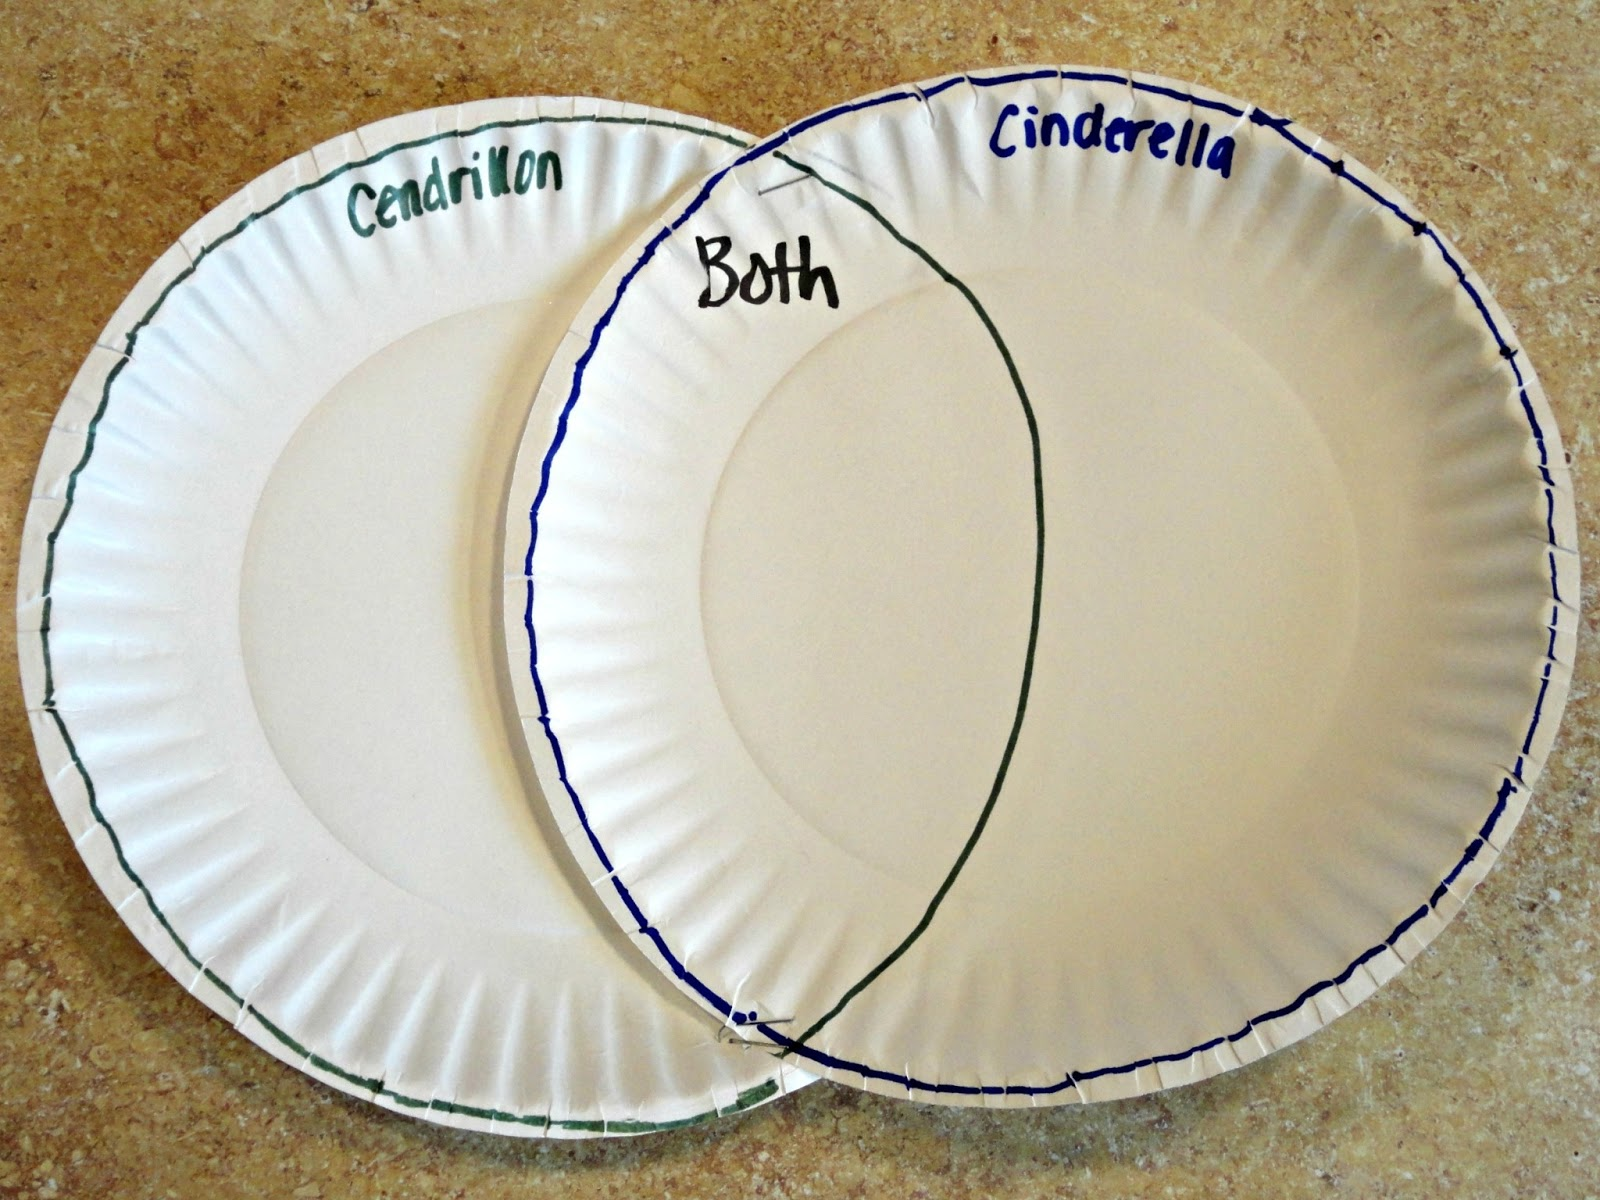 Cendrillon Venn Diagram Wiring For Inverter At Home Influence Invest Inspire The Journey Of A Young Teacher Spiced You Might Have Seen This Idea Floating Around Cyberspace But Did Actually Give It Shot Is Very Inexpensive Fun Way To Engage Students In